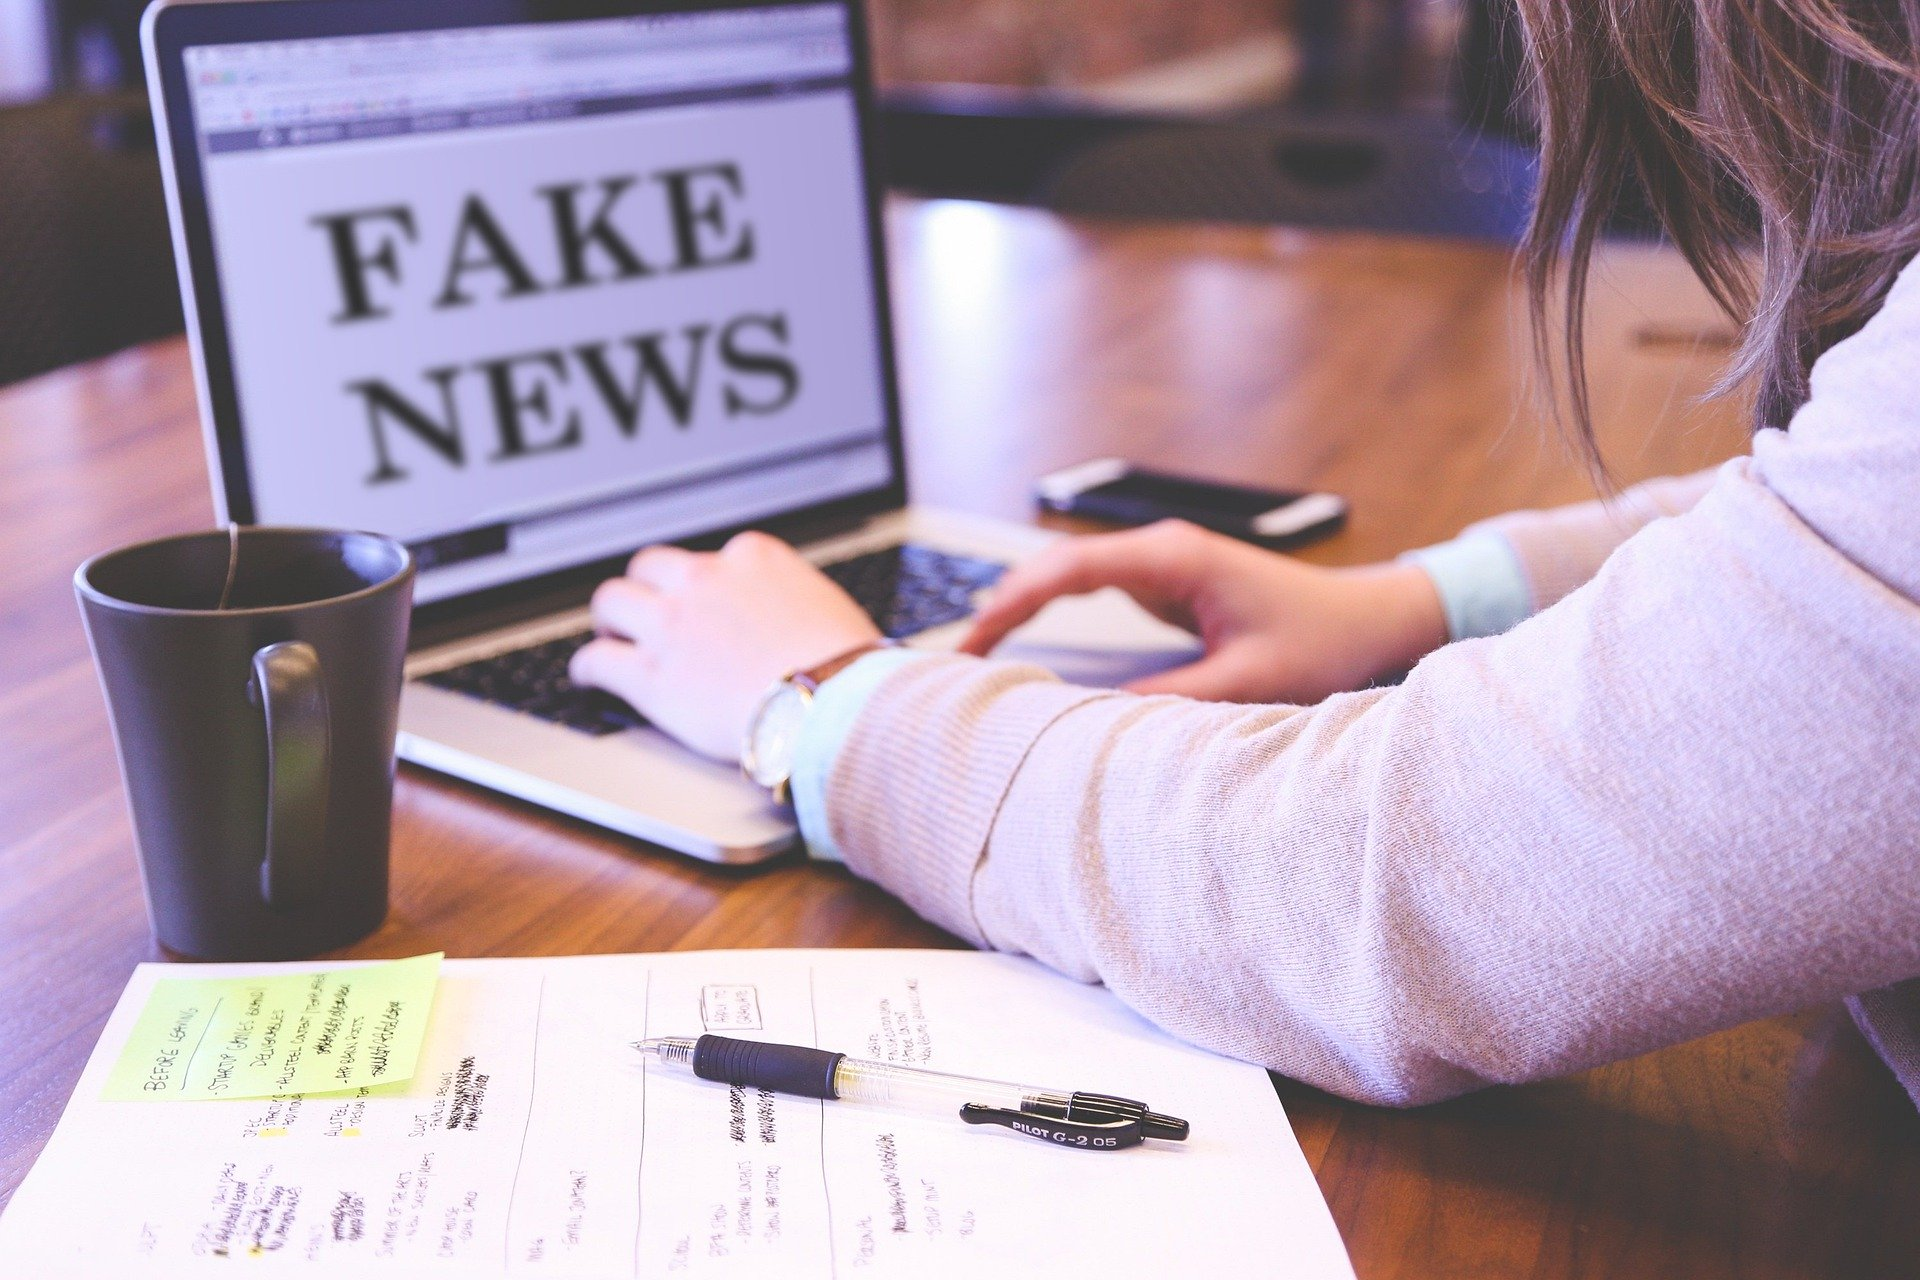 propaganda de fake news